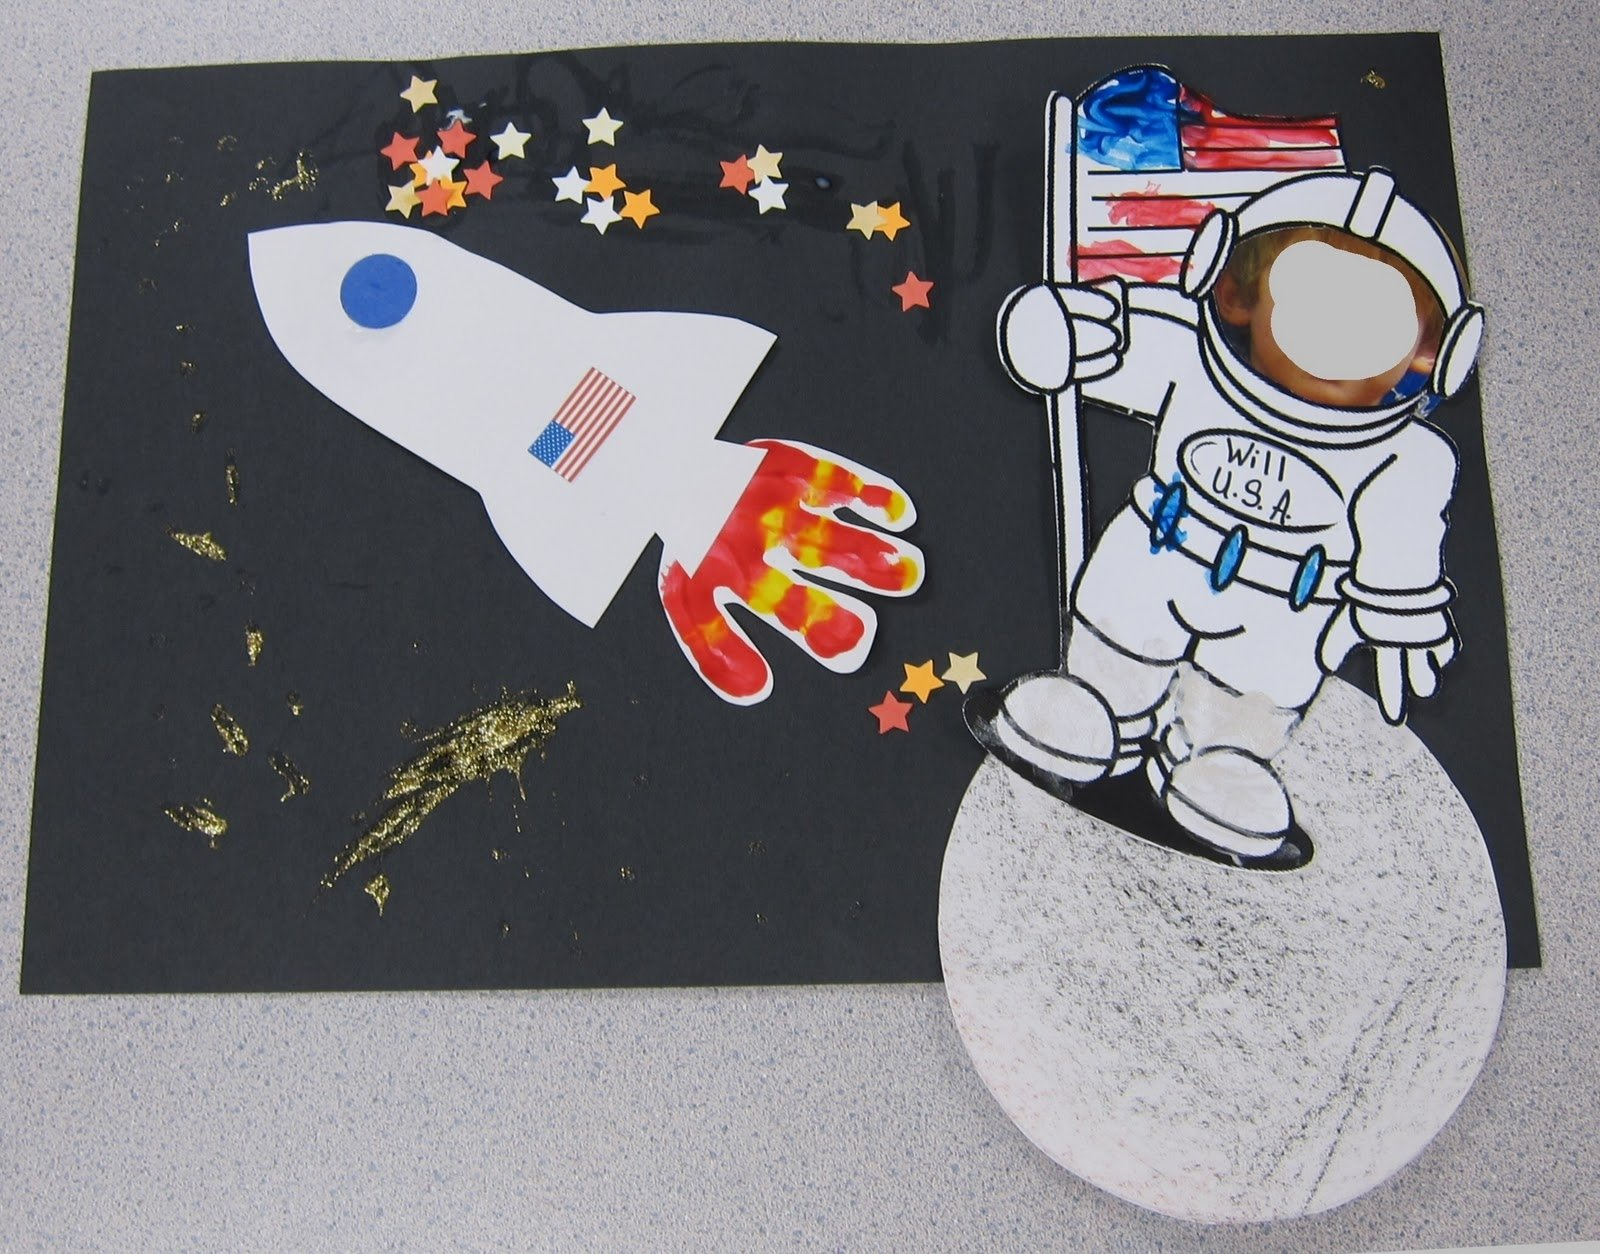 10 Fabulous A Rocket To The Moon Your Best Idea mrs karens preschool ideas lets fly to the moon or jupiter 1 2020